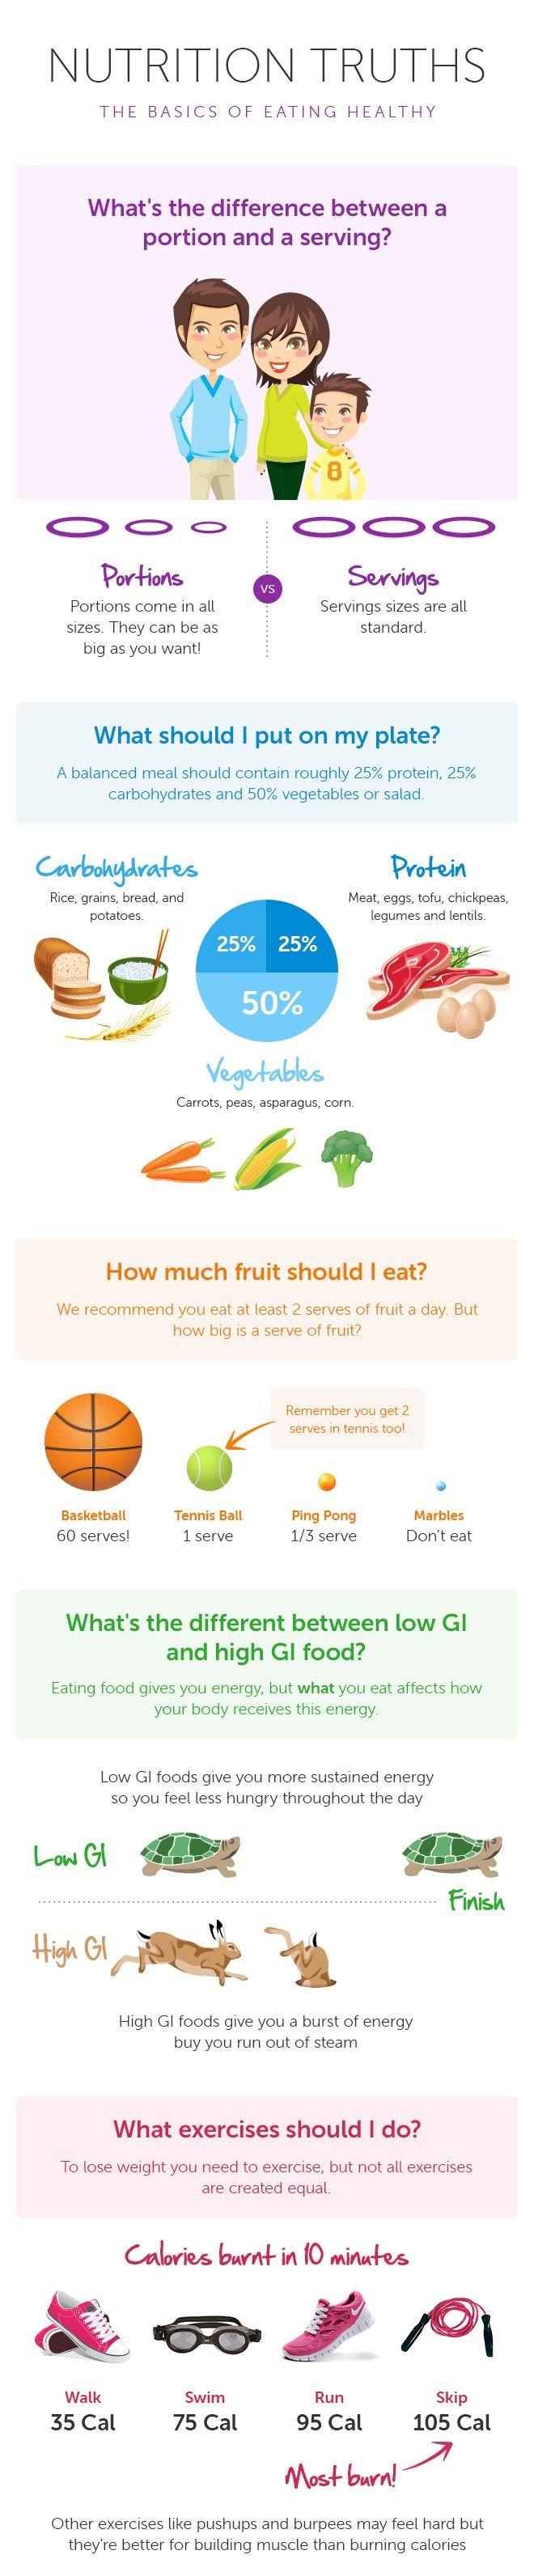 Fit fact: Carbs are NOT the enemy! Check out the infographic below to learn which carbs fuel your body.